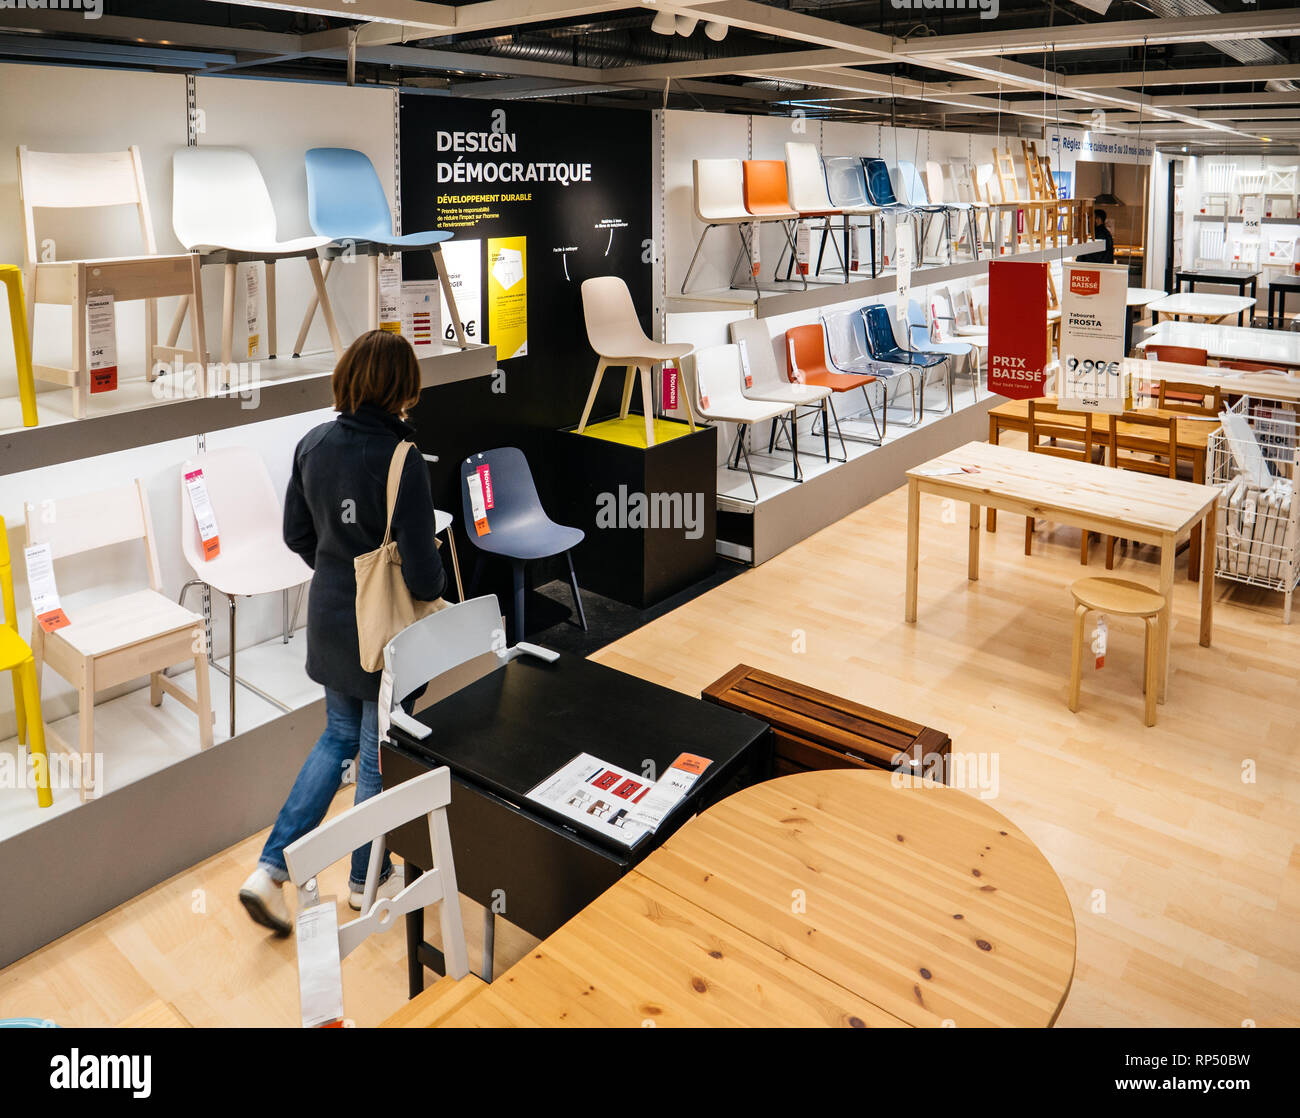 PARIS, FRANCE - SEP 9, 2017: View from above of French adult woman shopping for chairs furniture in the IKEA shopping furniture mall center - Stock Image